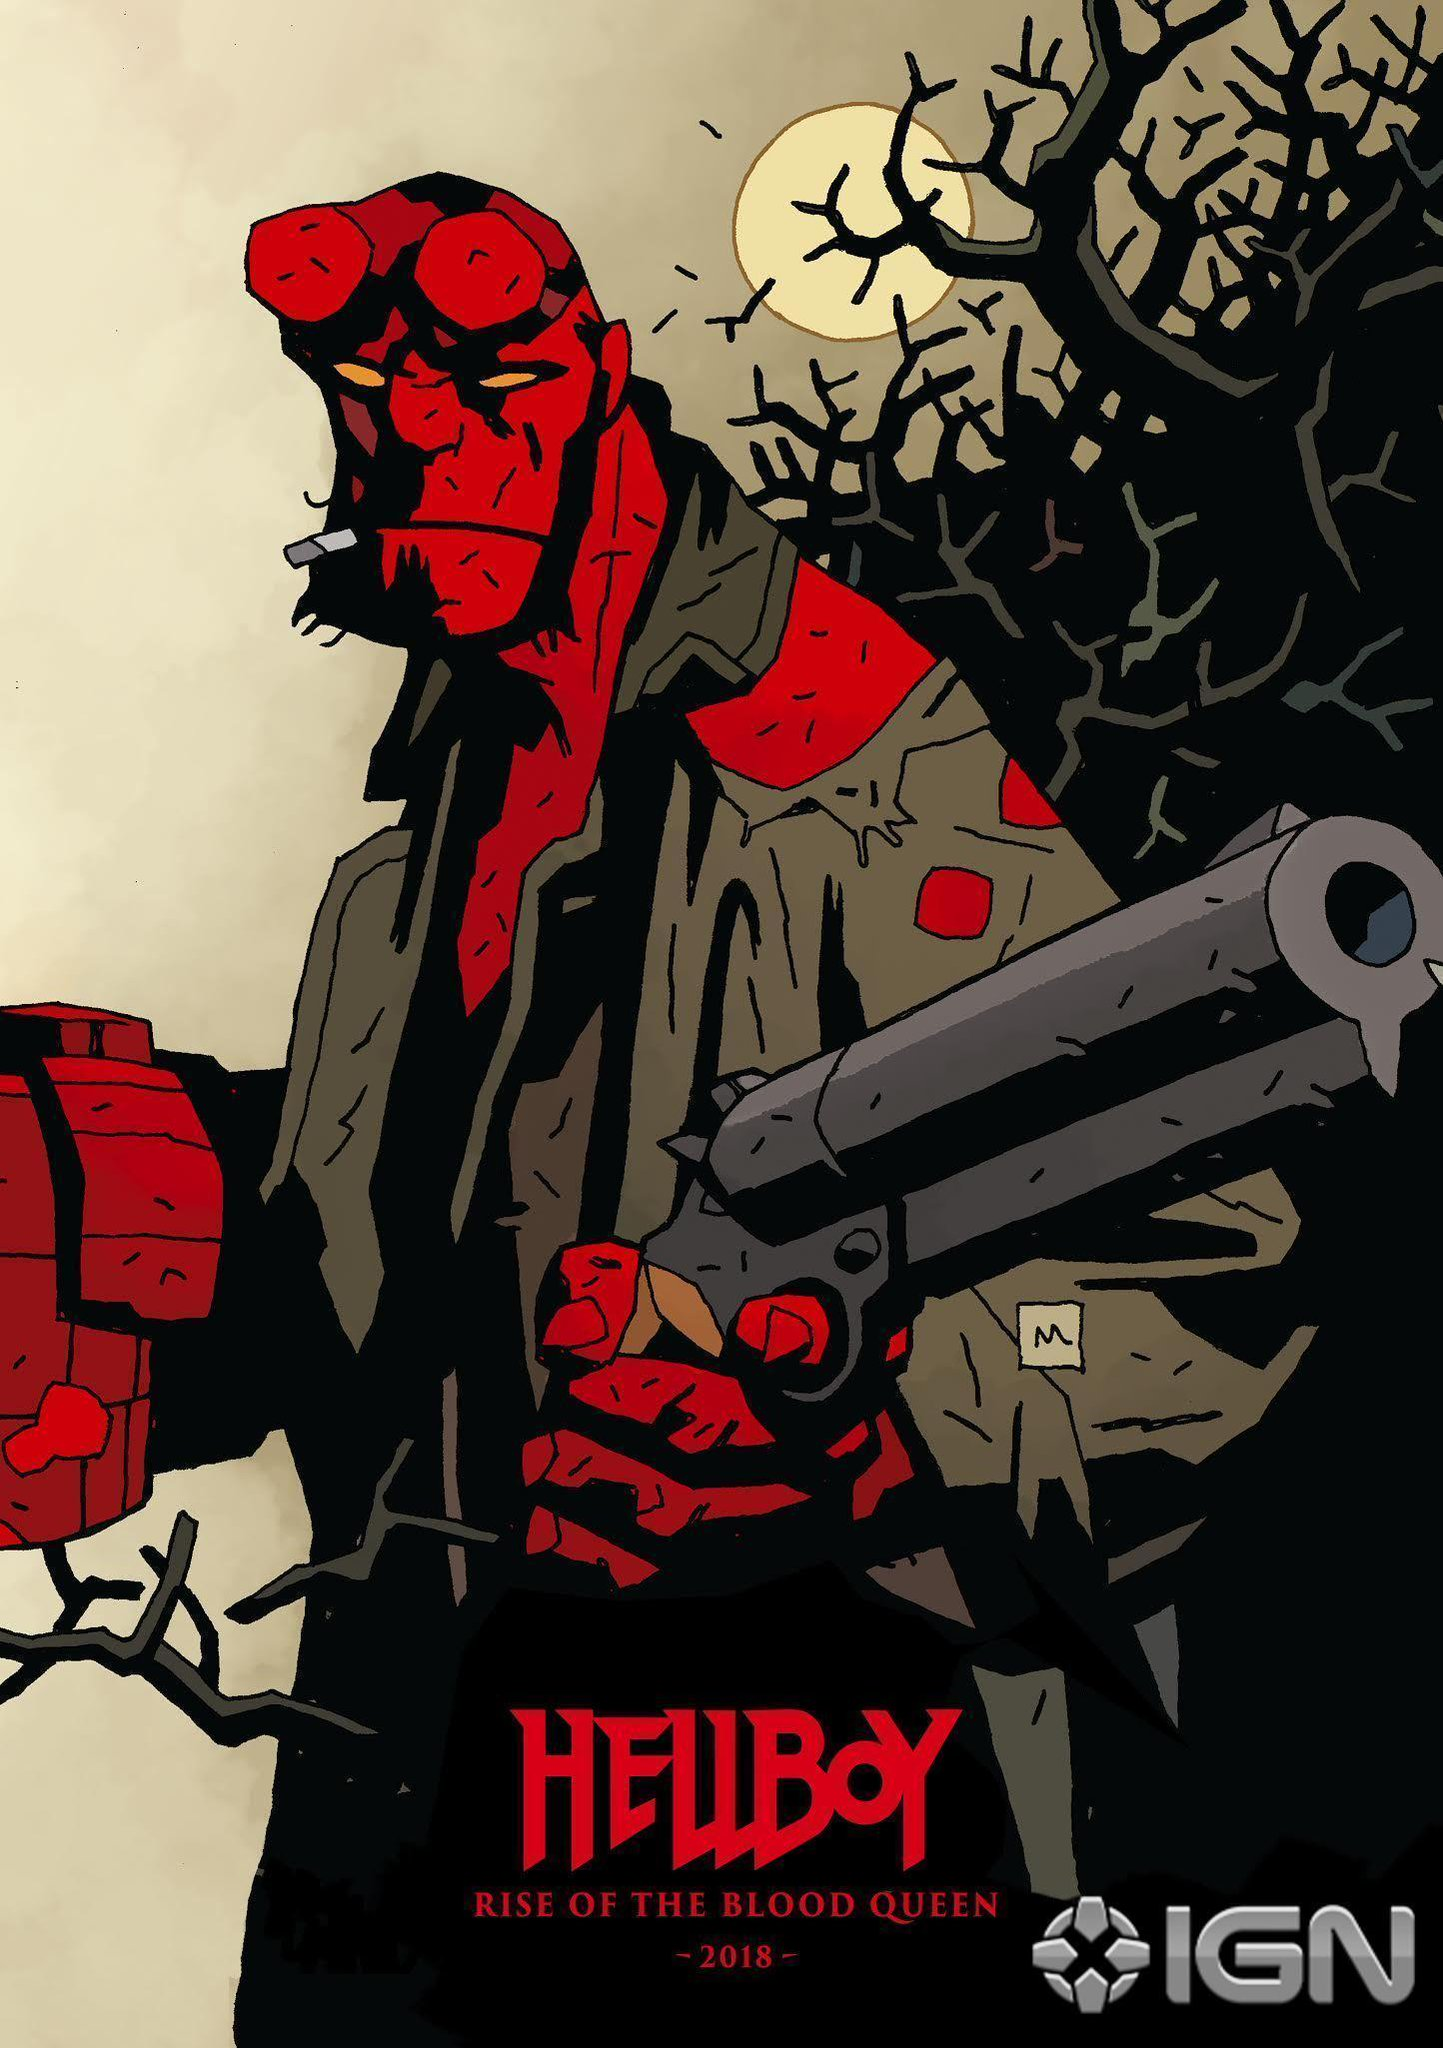 Totally want the first #Hellboy reboot movie art as a poster NOW: https://t.co/L5FvDXr77f https://t.co/hVO6svxewM